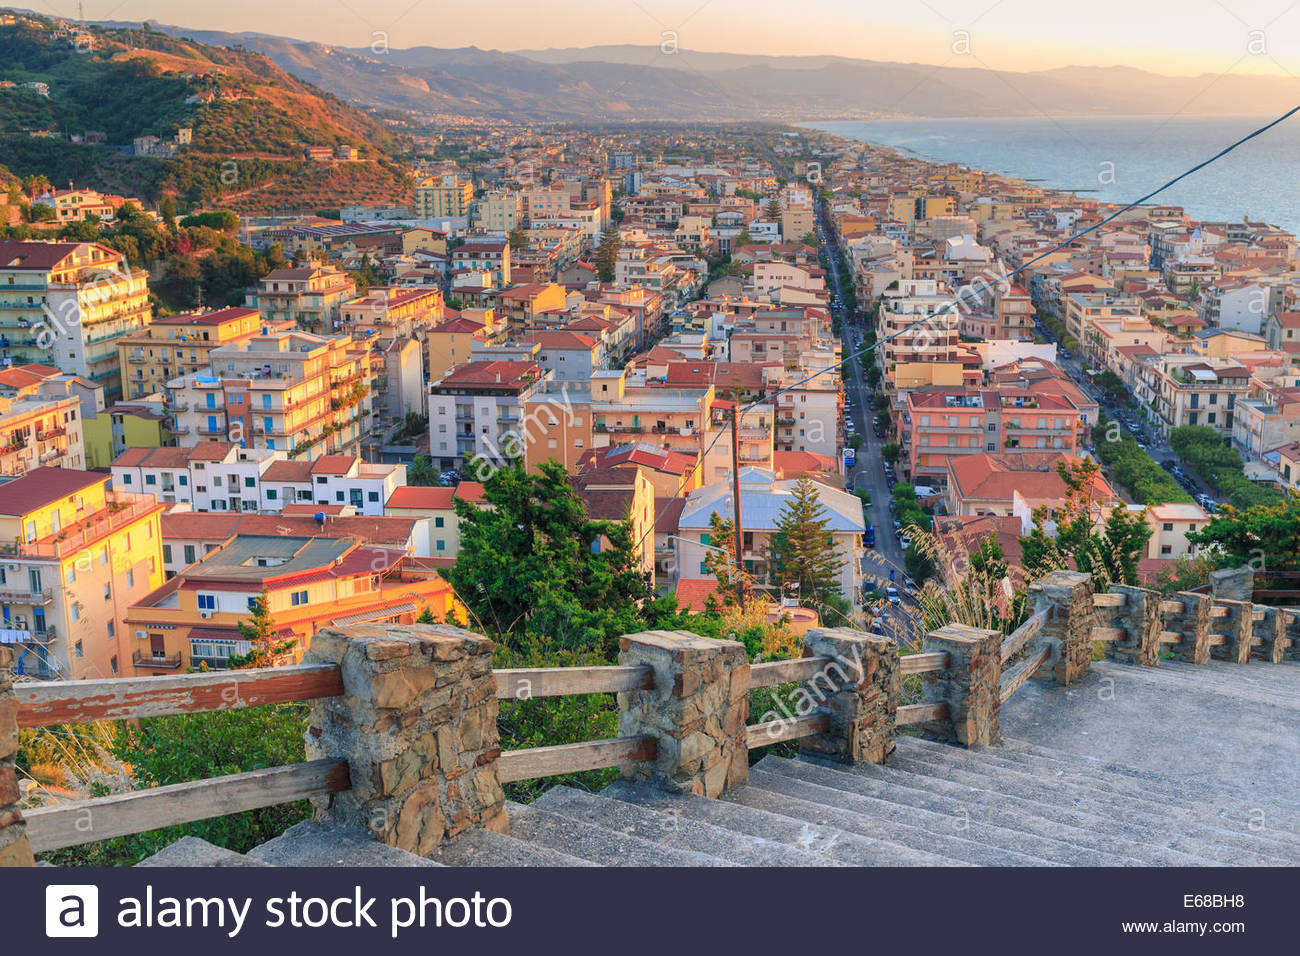 Wonderful panorama of Capo d Orlando (Italy) during sunset. Capo d Orlando  is a comune in the province of Messina f8c45a8785a25